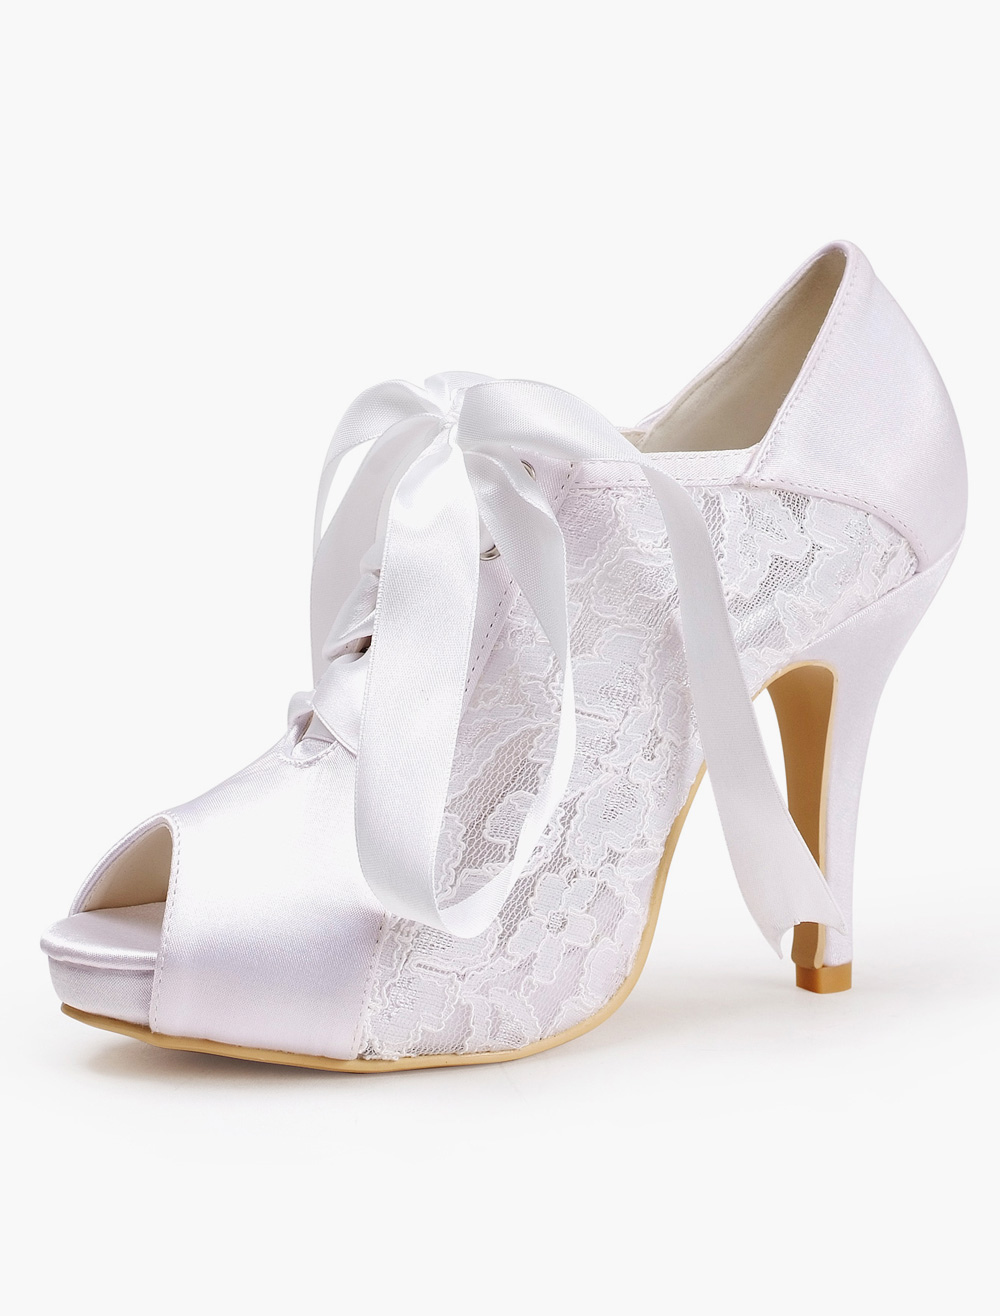 Silk And Satin Lace Peep Toe Pumps For Bride